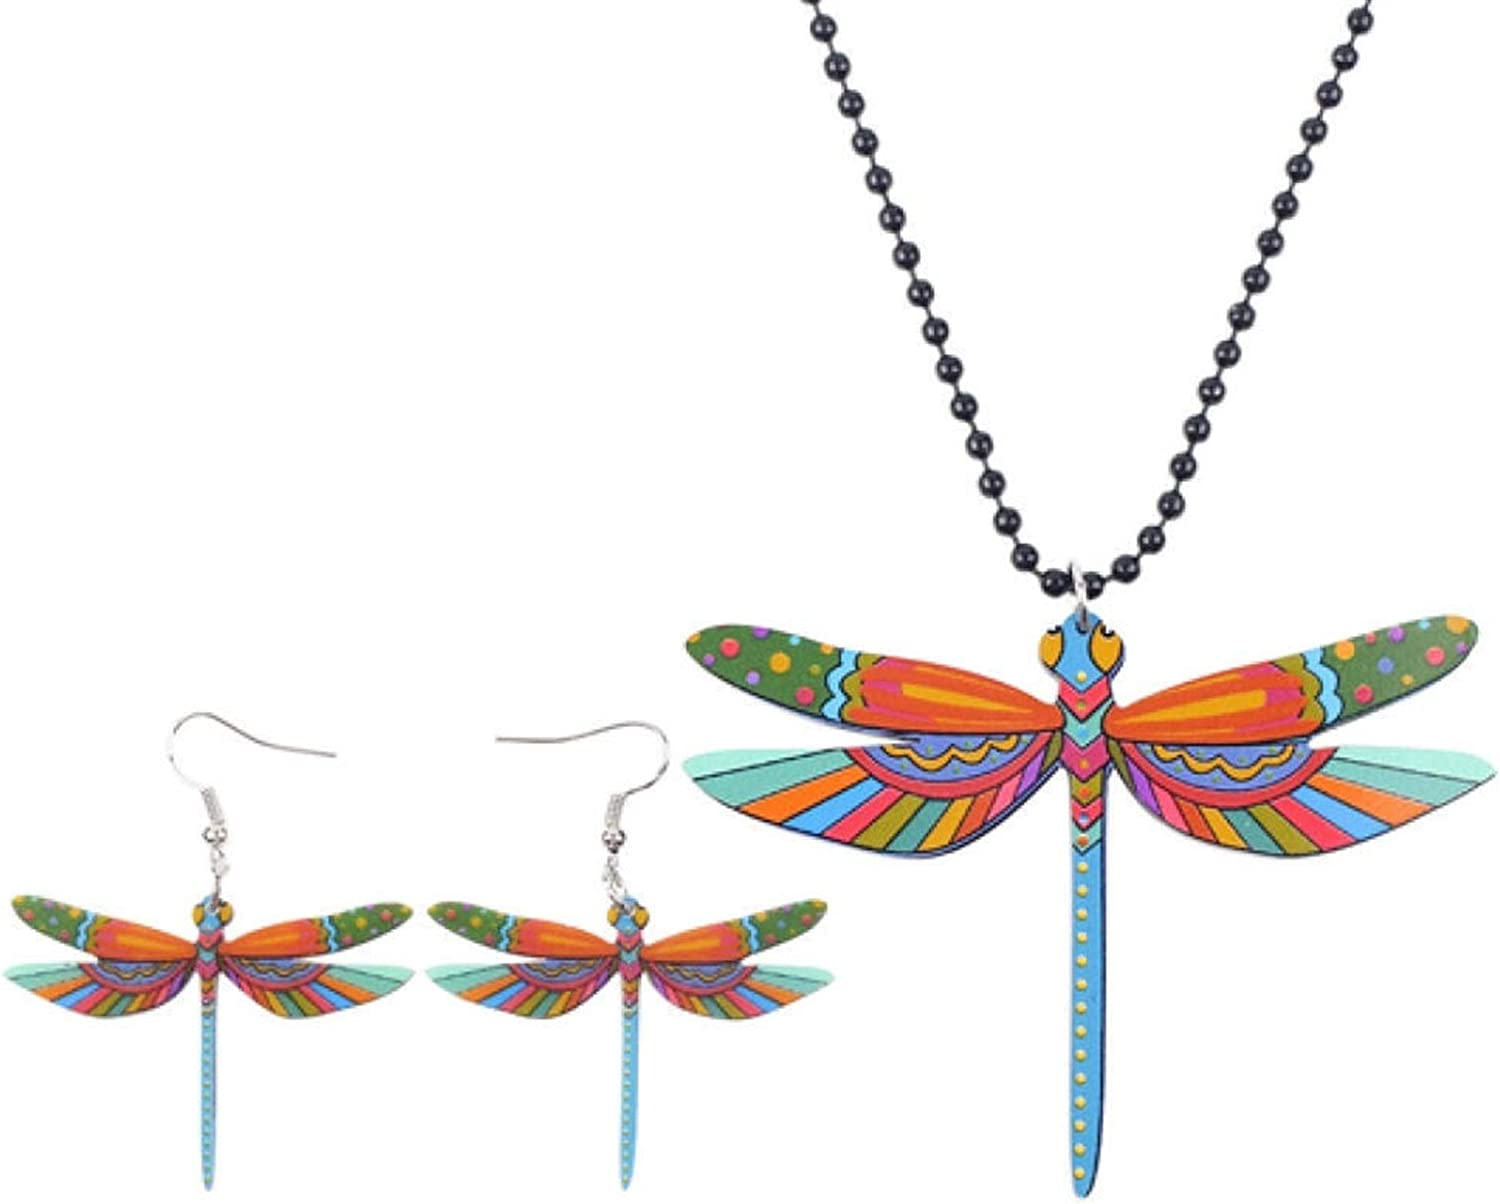 bayue Acrylic Printing Dragonfly Jewelry Set Necklace Earring Fashion Animal Jewelry Insect Zhaozb (Color : Multicolor)